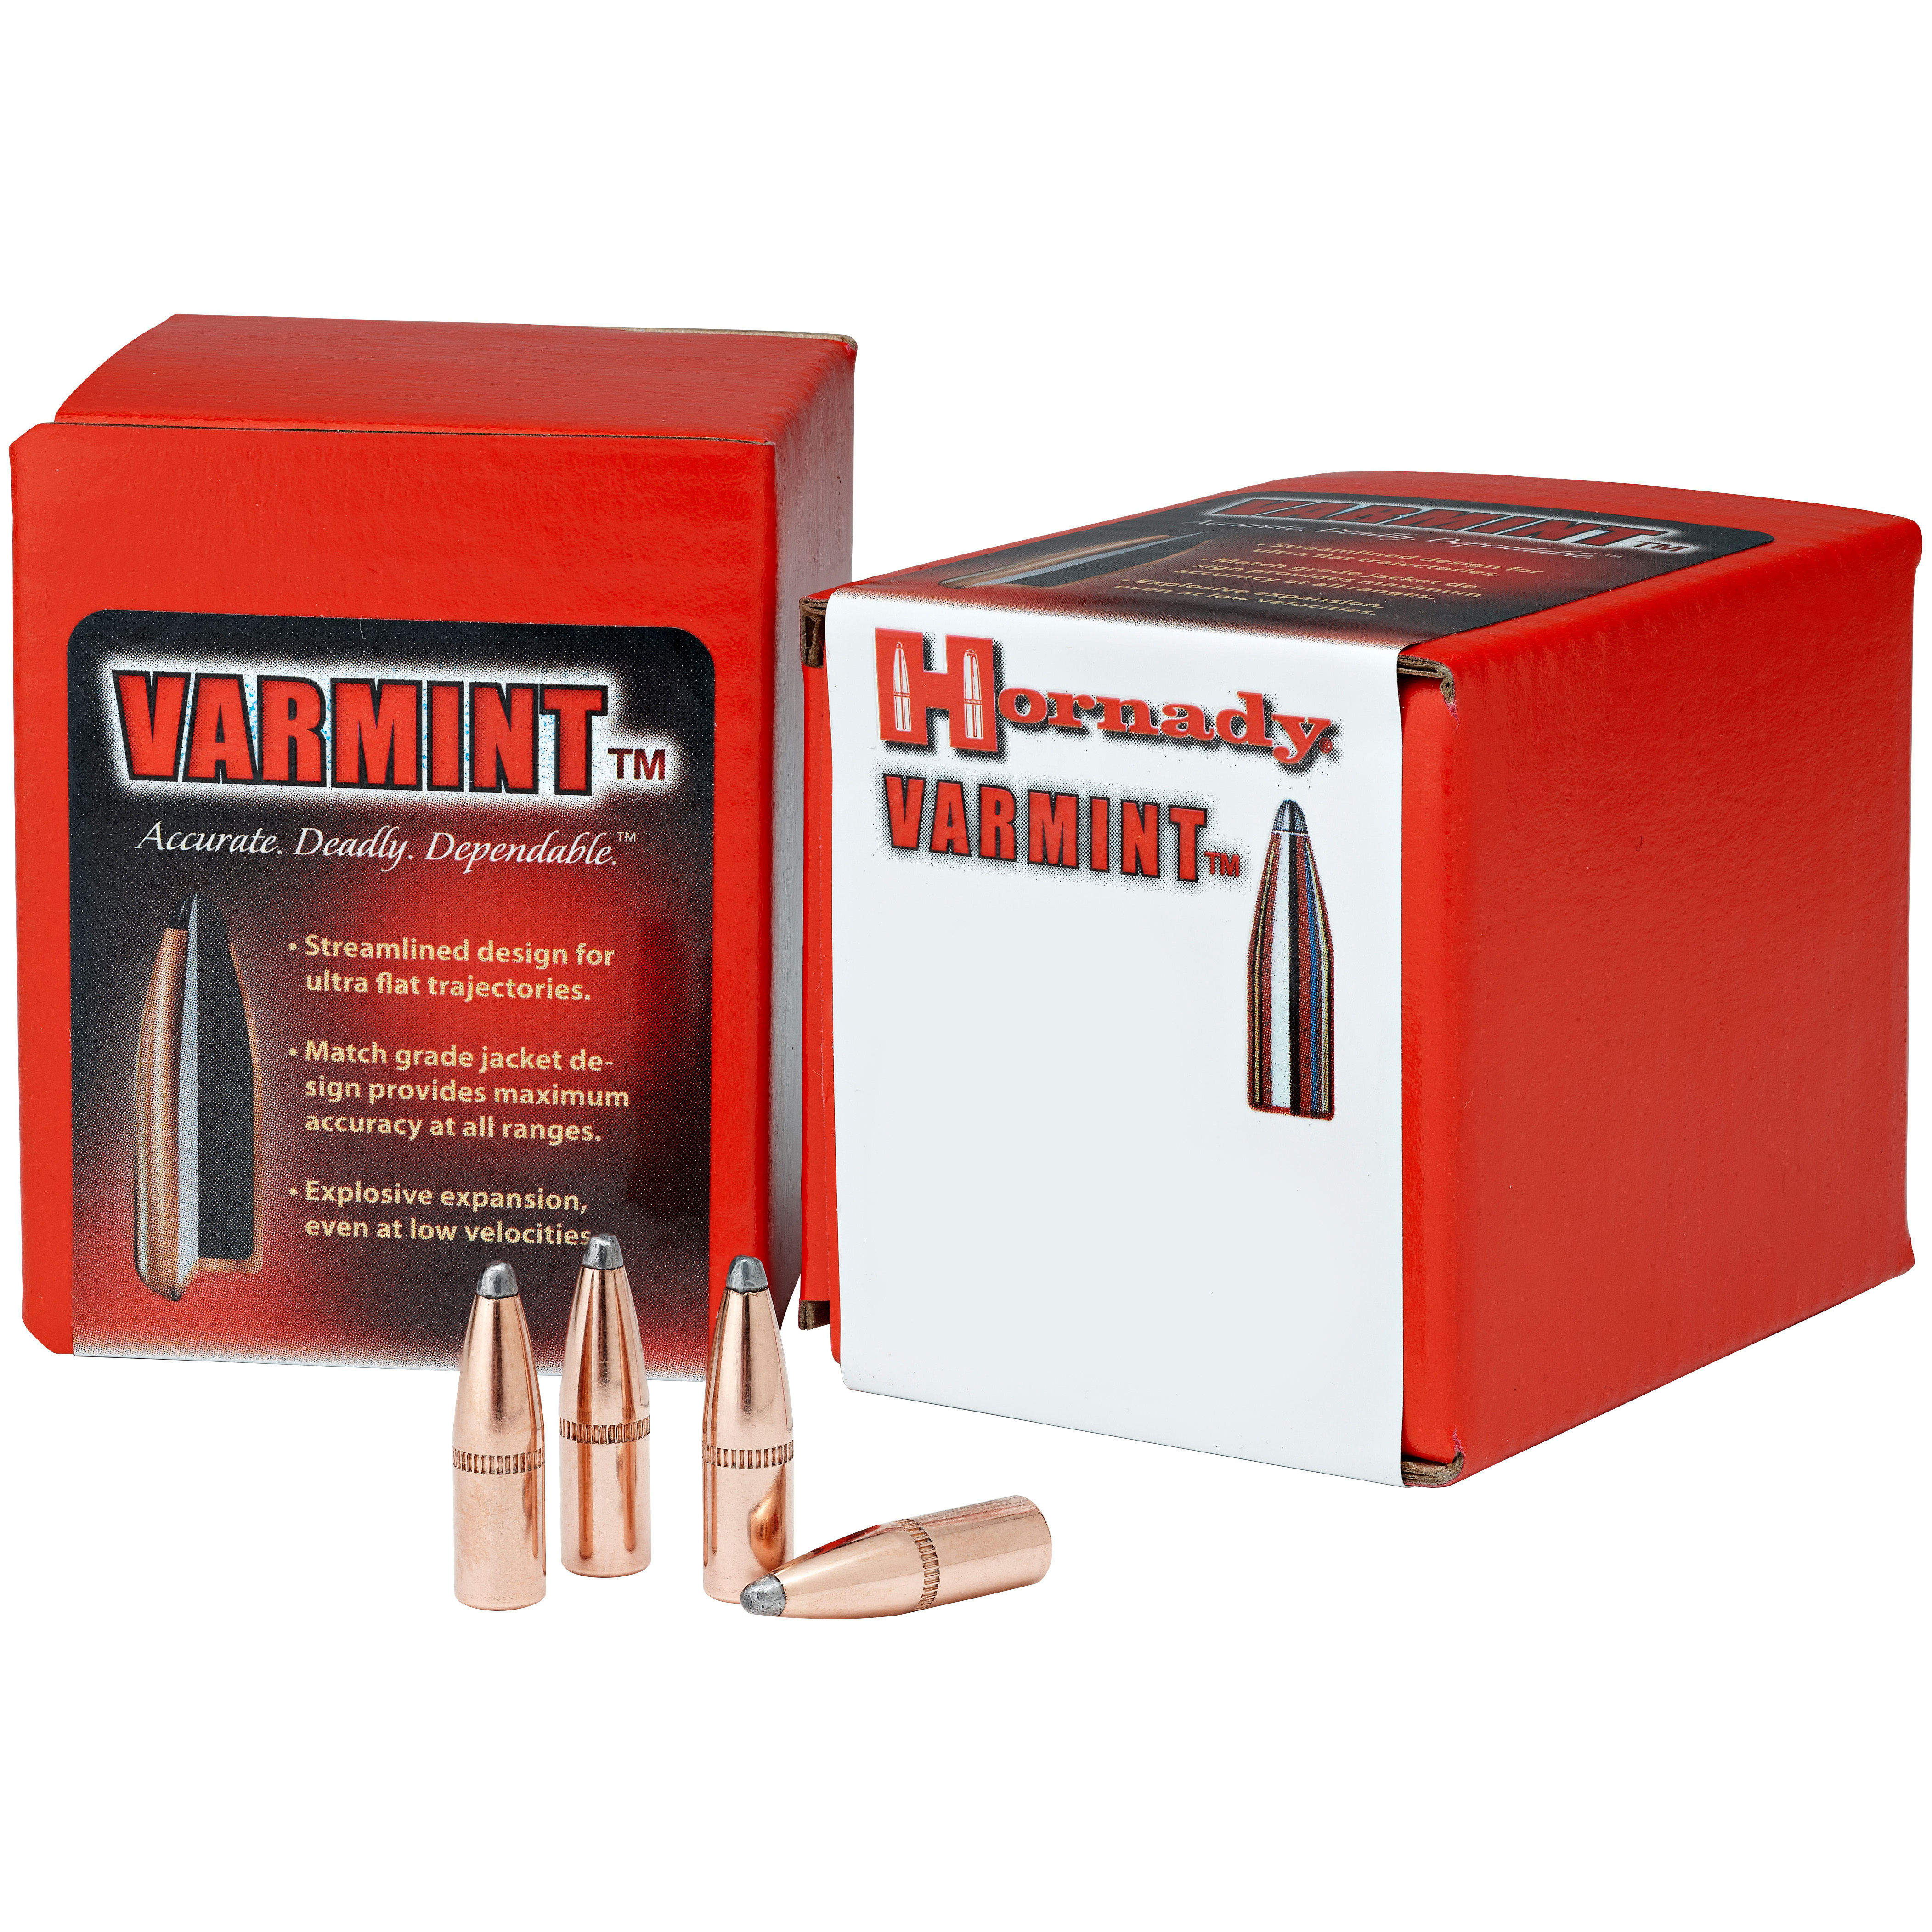 "100-Pk. of Hornady .22 Caliber 55-grain .224"" SP Cannelure Varmint Bullets offer topnotch performance during any hunt! Incredibly accurate. These Hornady .22 Caliber 55-grain .224 SP Cannelure Varmint Bullets feature a streamlined design for ultra flat trajectories and excellent accuracy. Upon impact they expand to provide maximum stopping power. Perfect for hunting varmint and other small critters.Features:Streamlined design for ultra flat trajectories Match grade jacket design provides maximum accuracy at all ranges Explosive expansion, even at low velocities 55-grain weight 100 bullets per box. - $14.99"